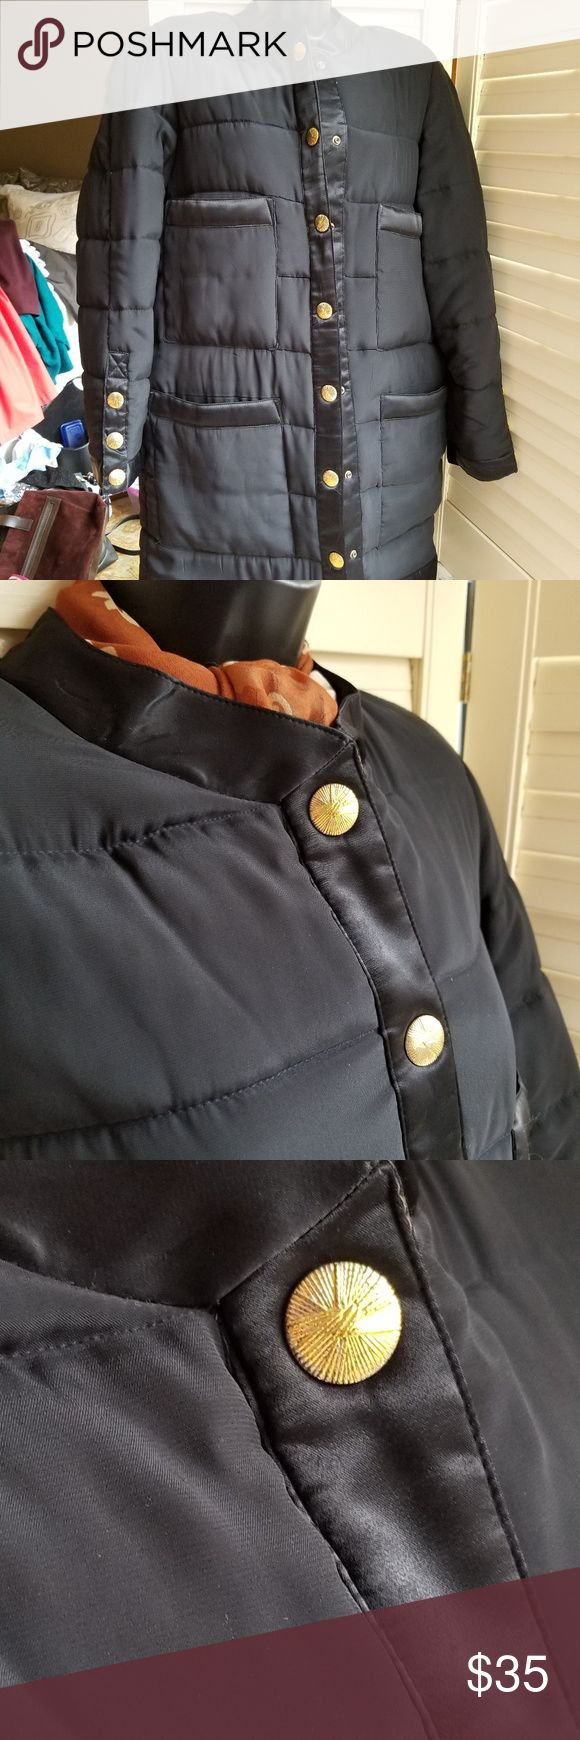 """Saks 5th Ave Blk Quilted Snap Front Puffer Coat L Super cozy Saks Fifth Ave quilted black puffer mid-length jacket with gold tone front snap close - warm enough for football games - stylish enough for evening wear - great condition - no apparent flaws   * Gold snap close on front and sleeves * Small stand-up collar * 4 large patch pockets on front * Approx Flat Msmnts: Shld - Shld 16"""" Slv 29.5"""" (from collar) Bust 22"""" Length 34.5"""" * 100% polyester exterior and lining - Crepe poly body - Satin…"""